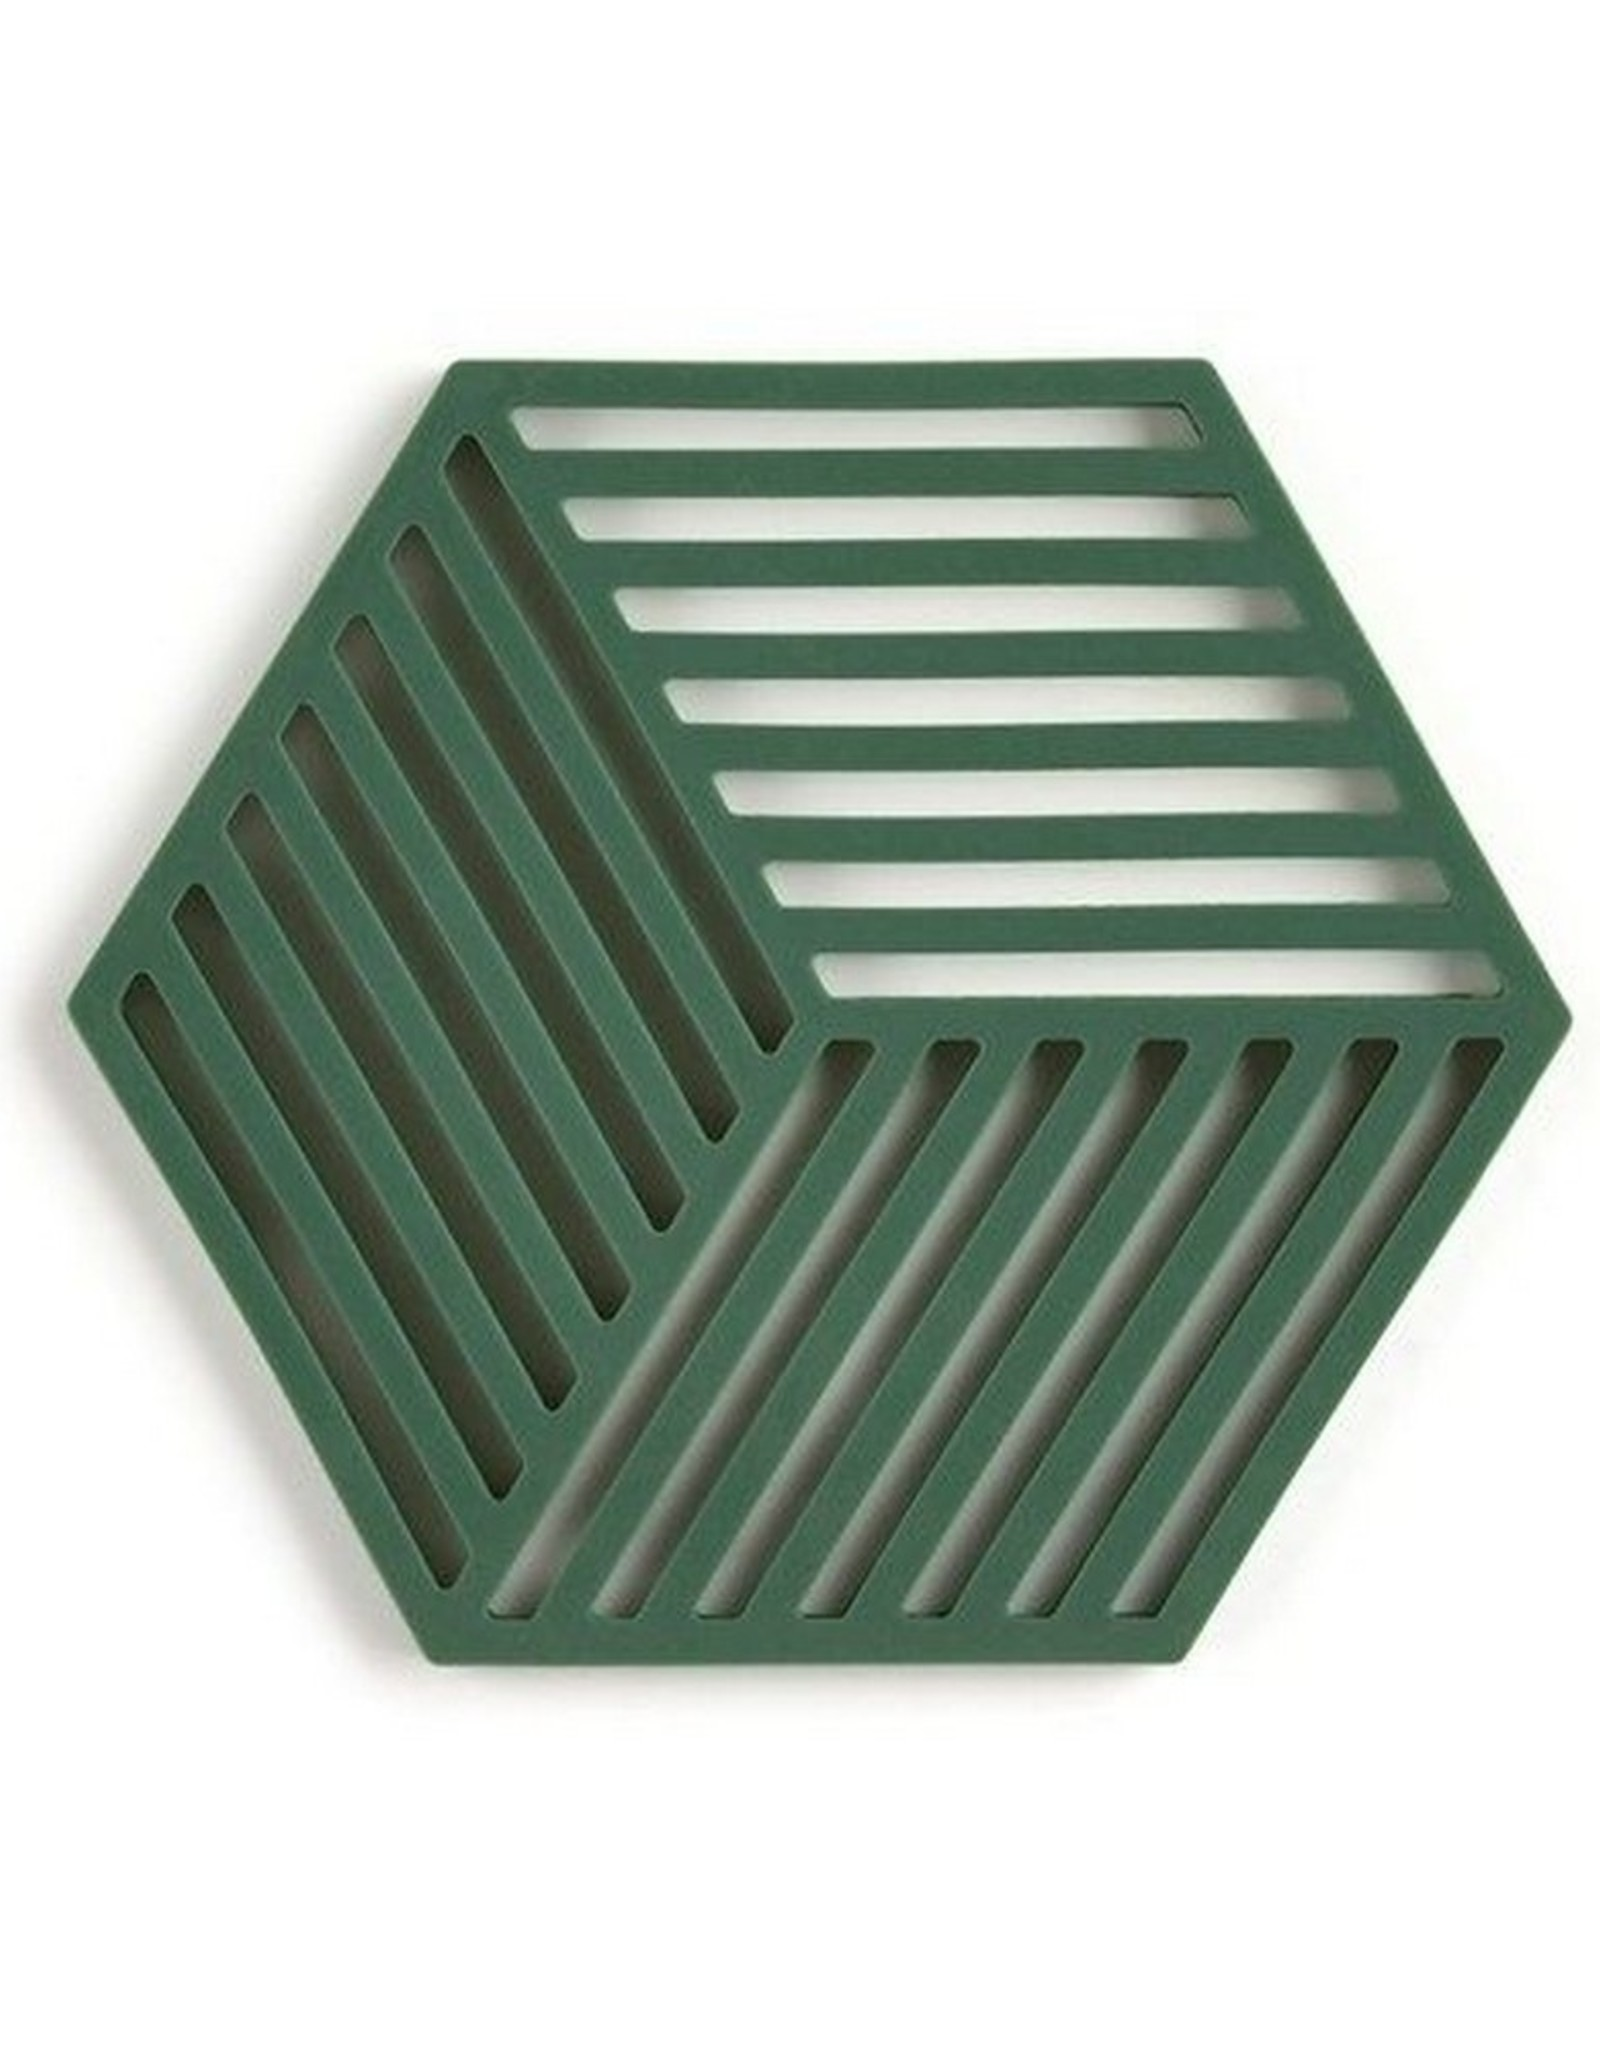 ZONE Denmark Pannenonderzetter Hexagon Grass